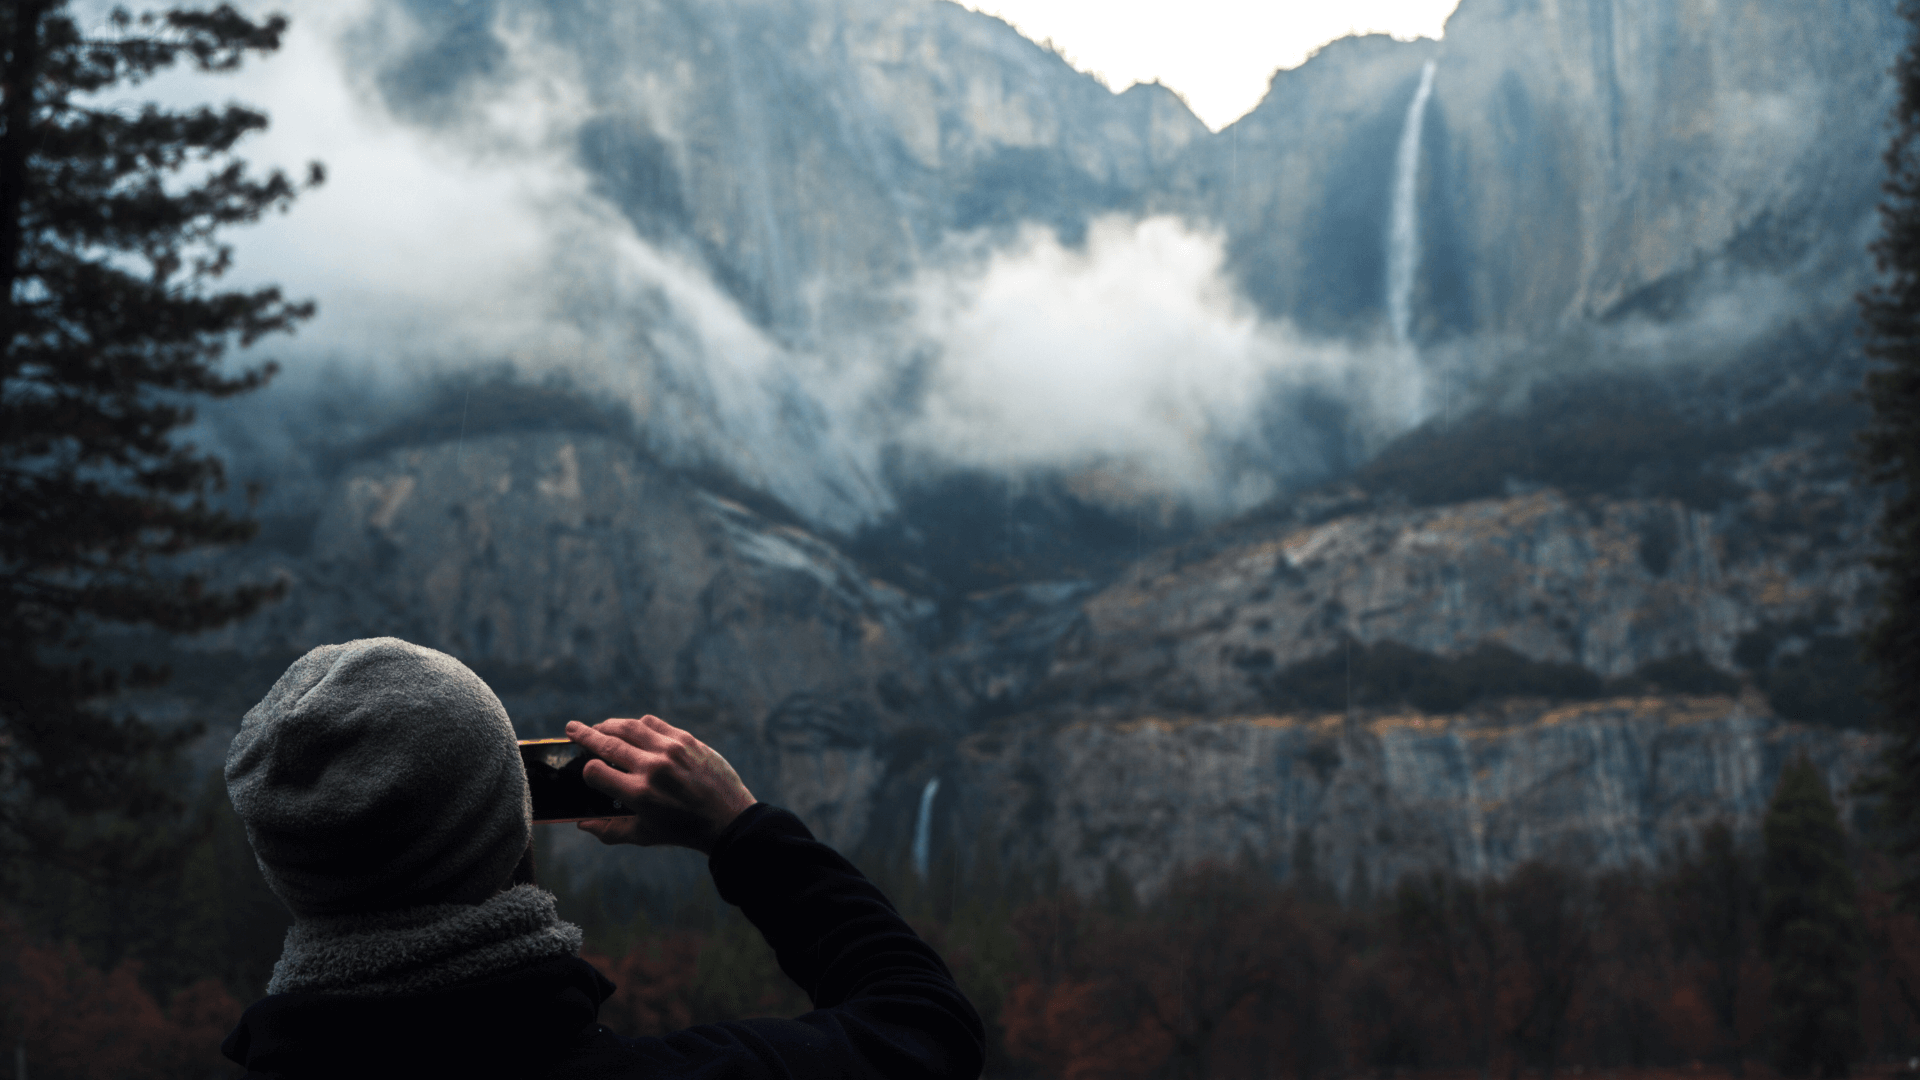 A man with a beanie on films Yosemite falls from his iphone on a cloudy day.